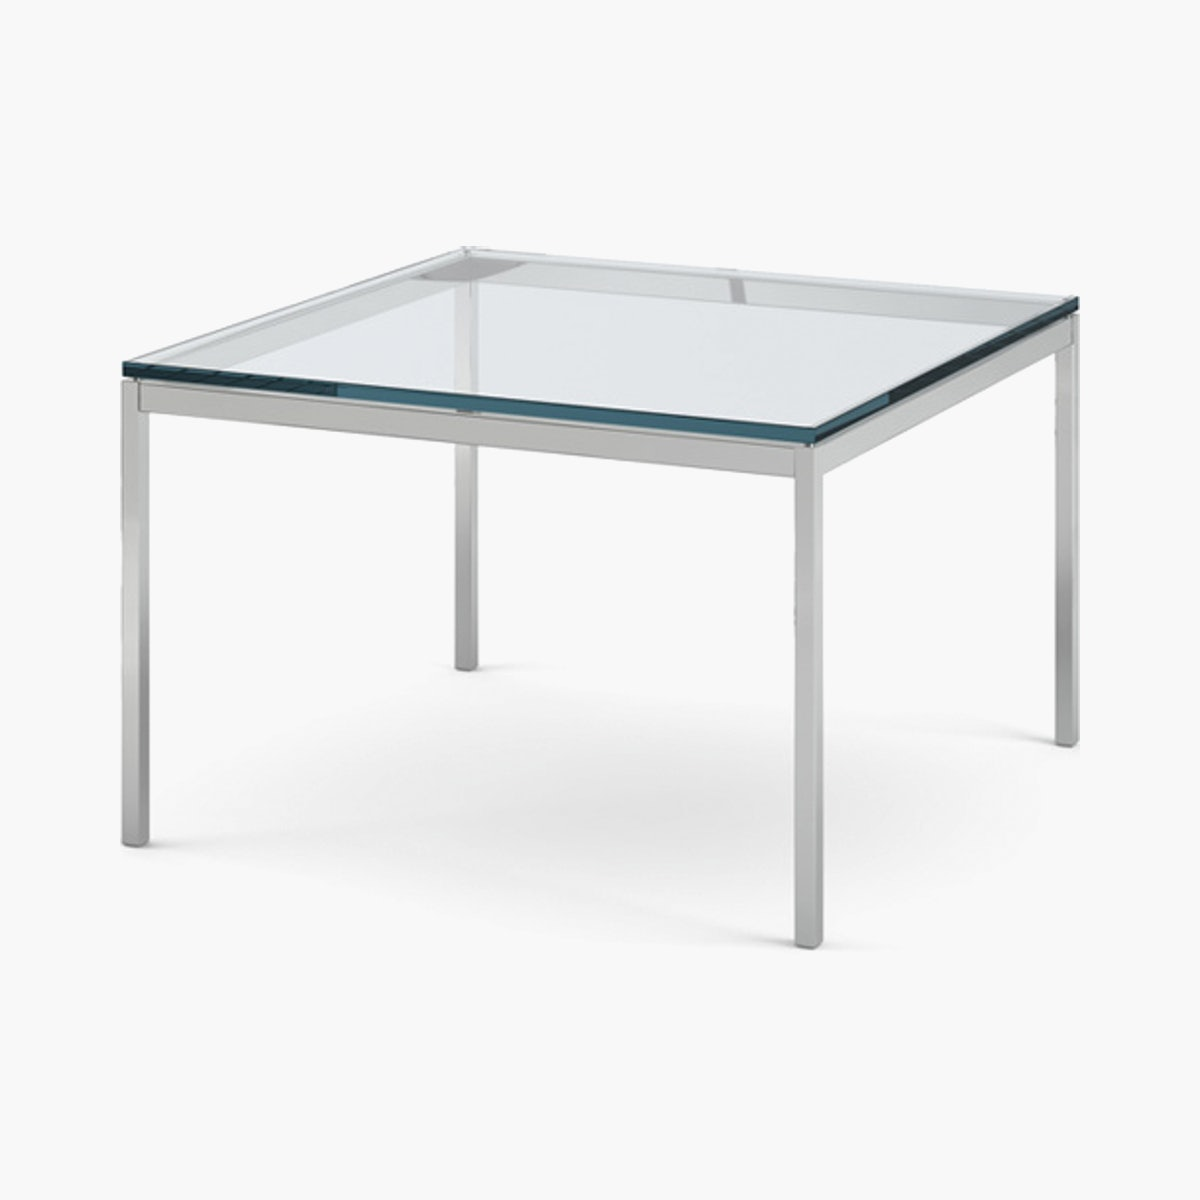 Florence Knoll Square End Table